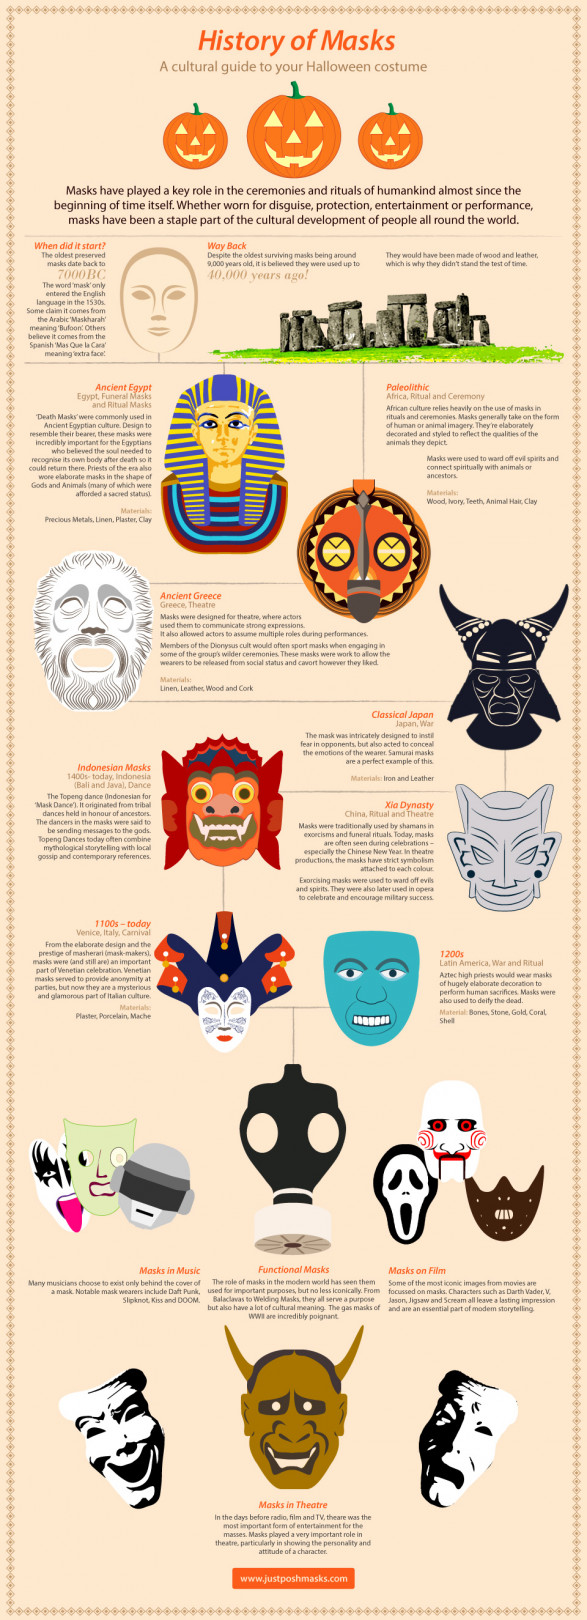 A History of Masks for Halloween